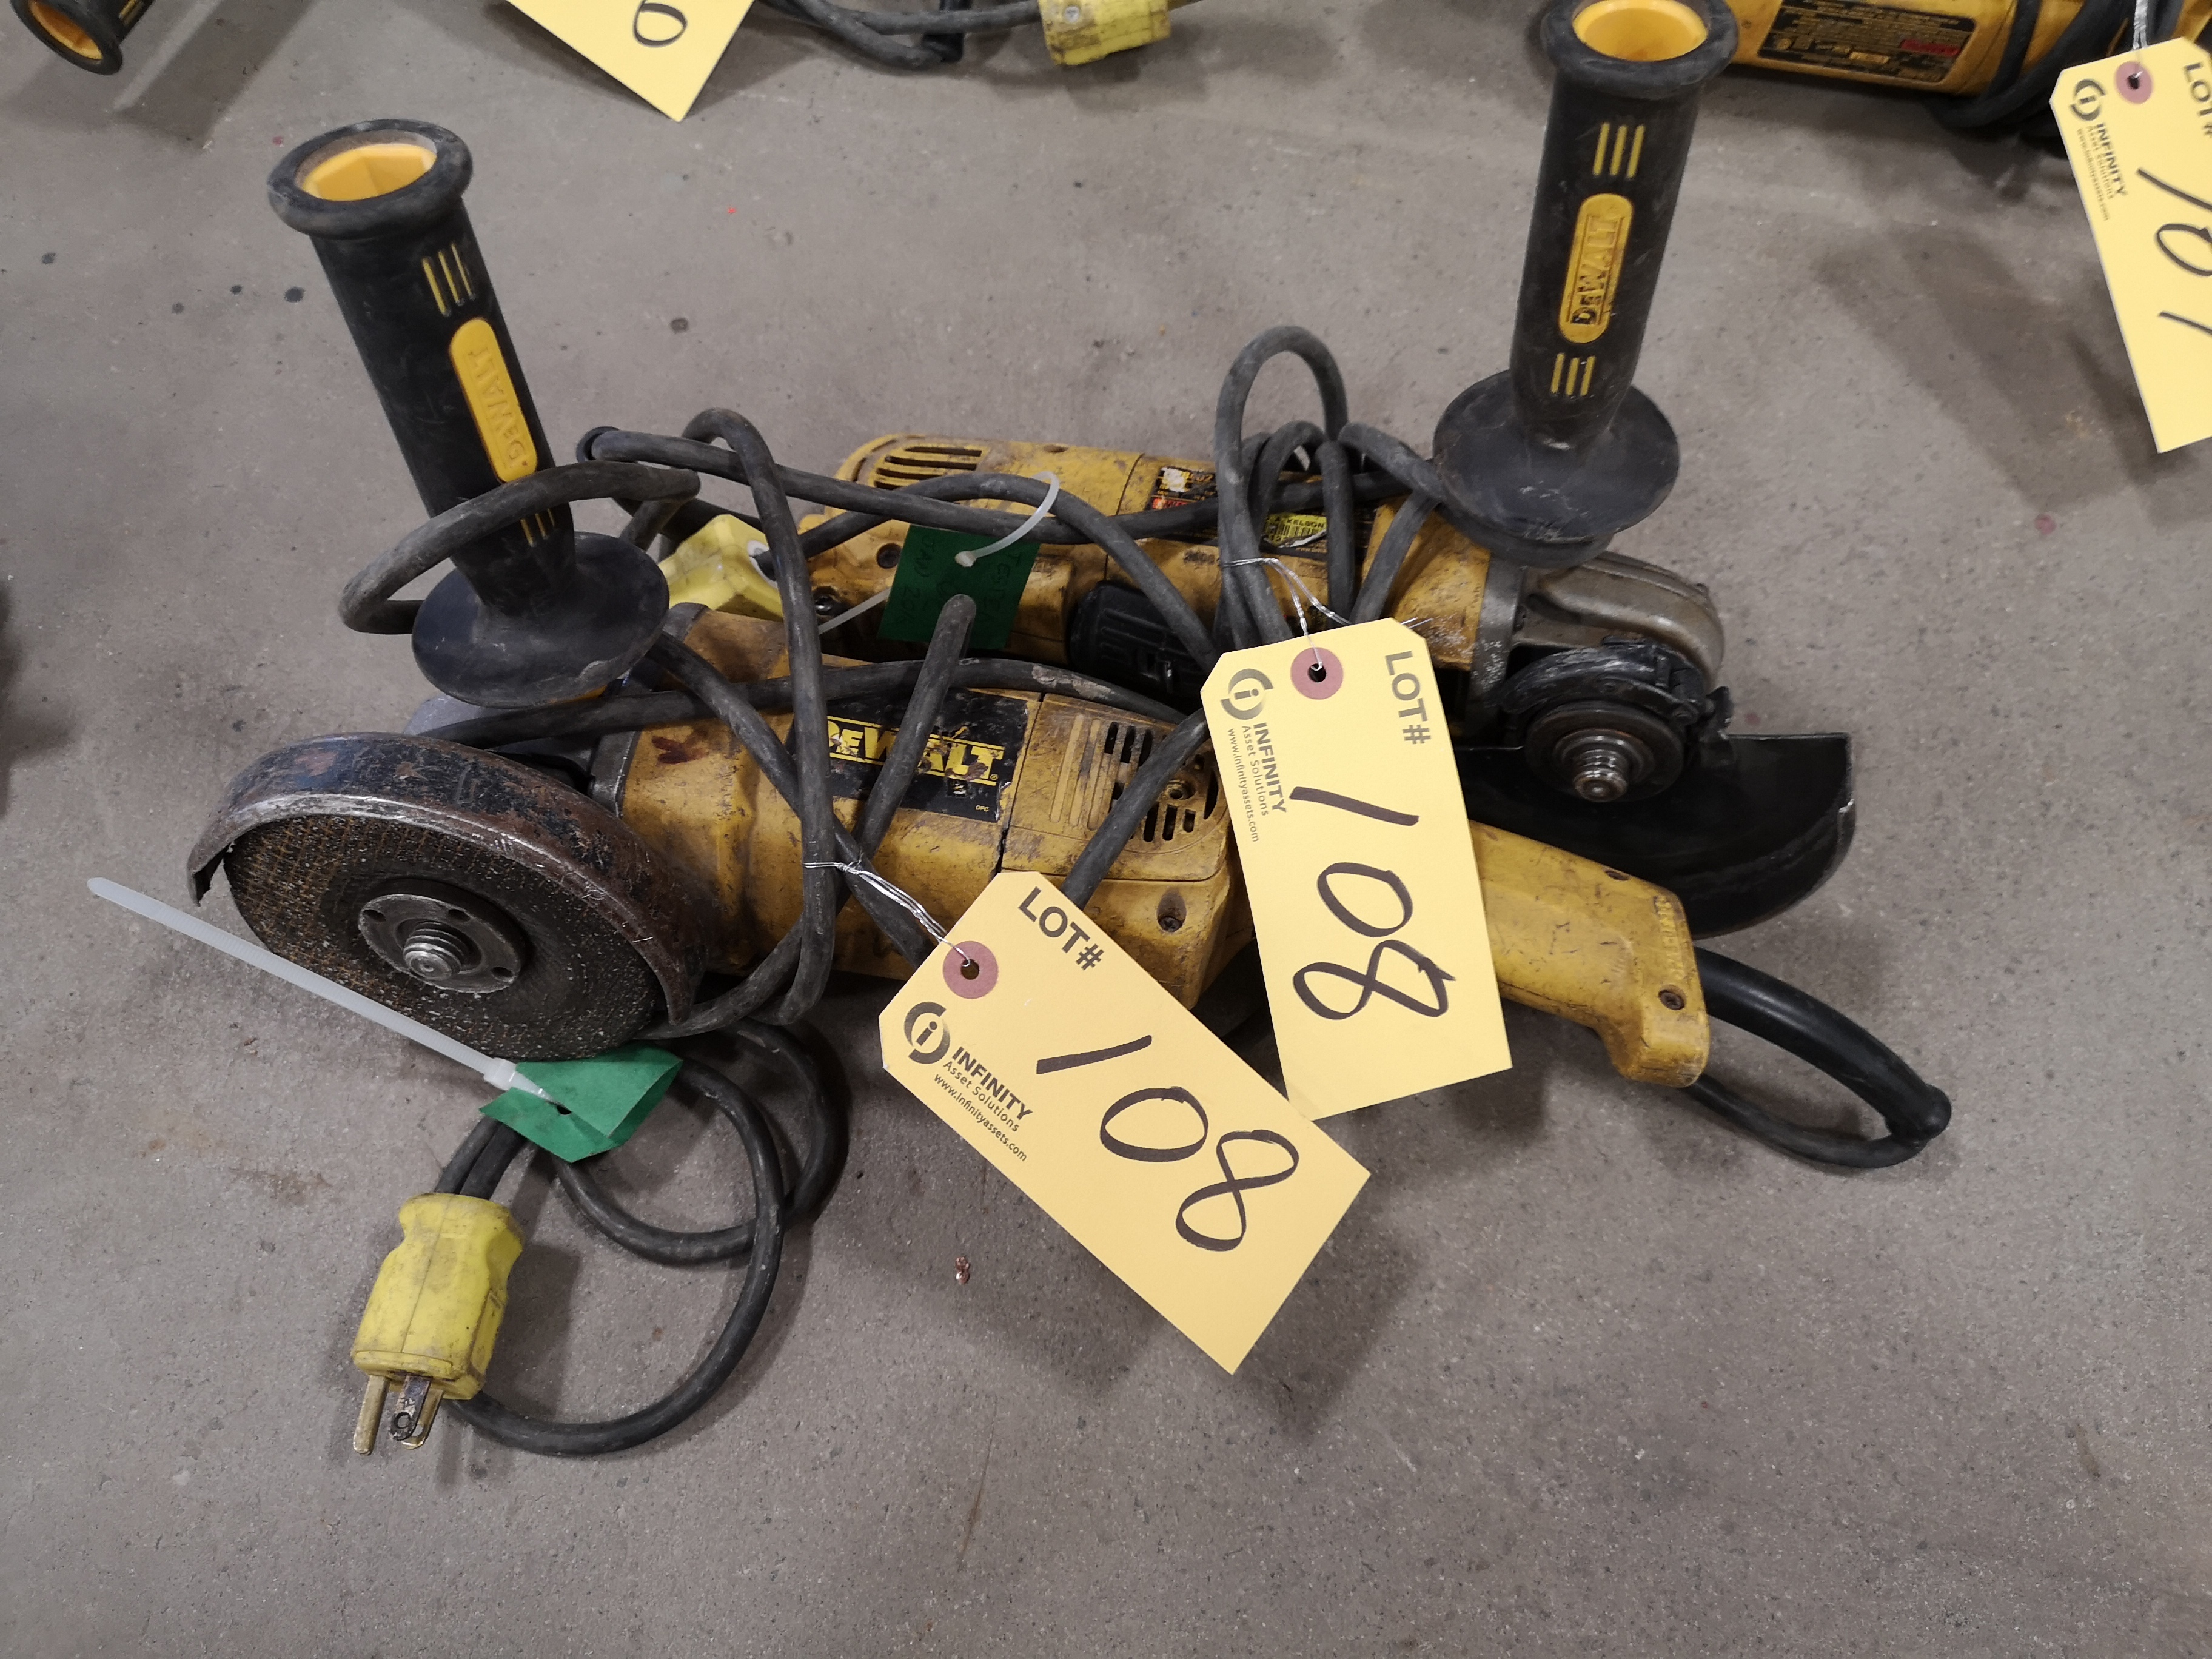 """LOT (2) DEWALT 4-1/2"""" AND 5"""" ANGLE GRINDER (LOCATED AT 1135 STELLAR DRIVE, NEWMARKET, ON)"""